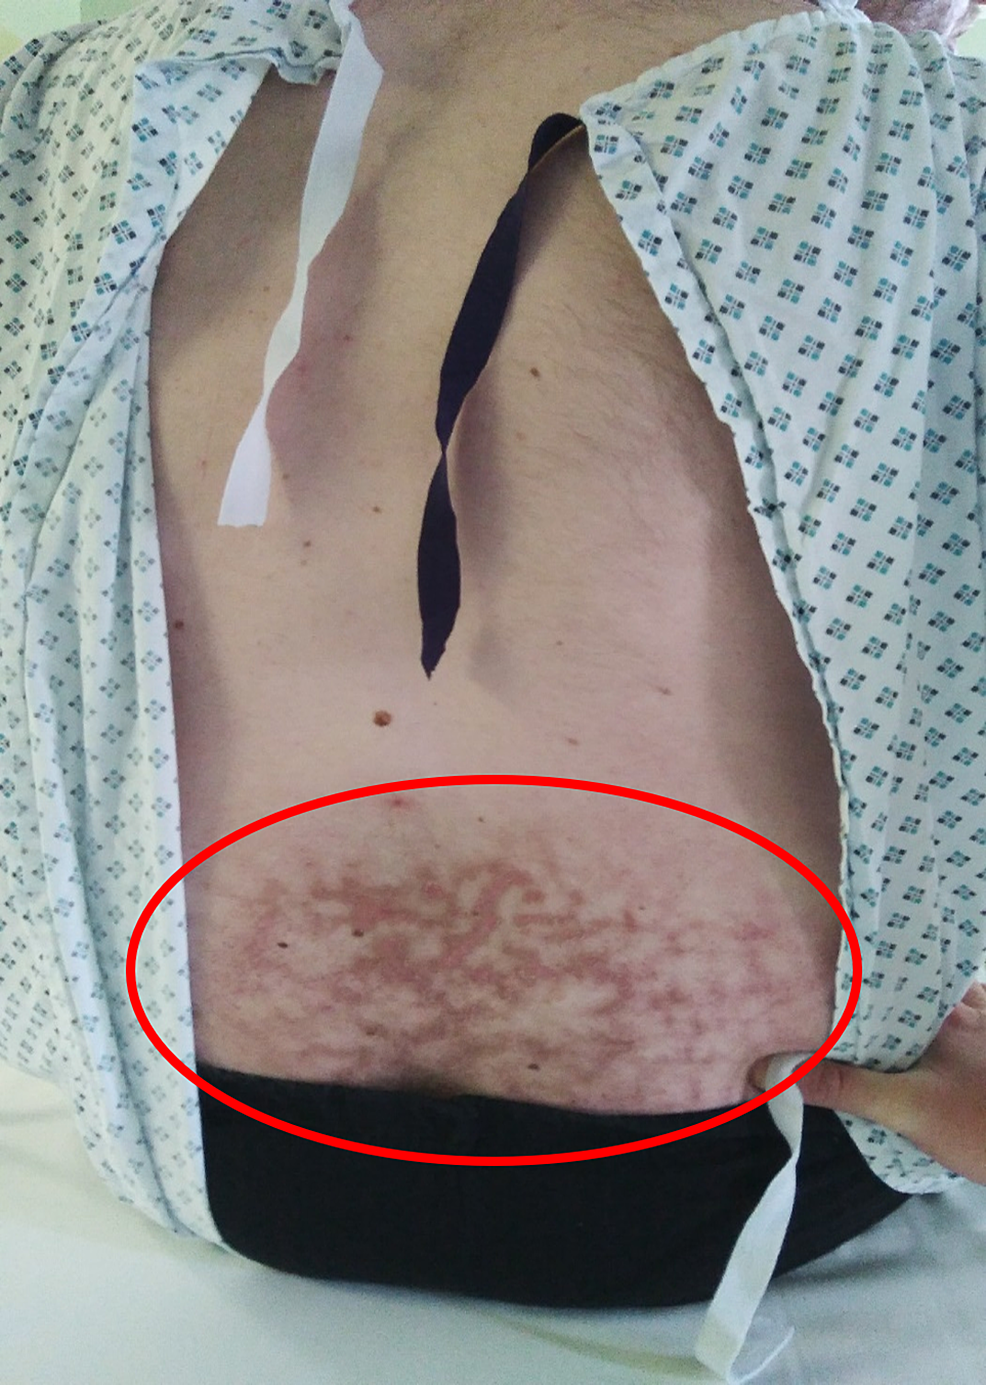 Clinical-example-of-erythema-ab-igne-in-the-lower-back